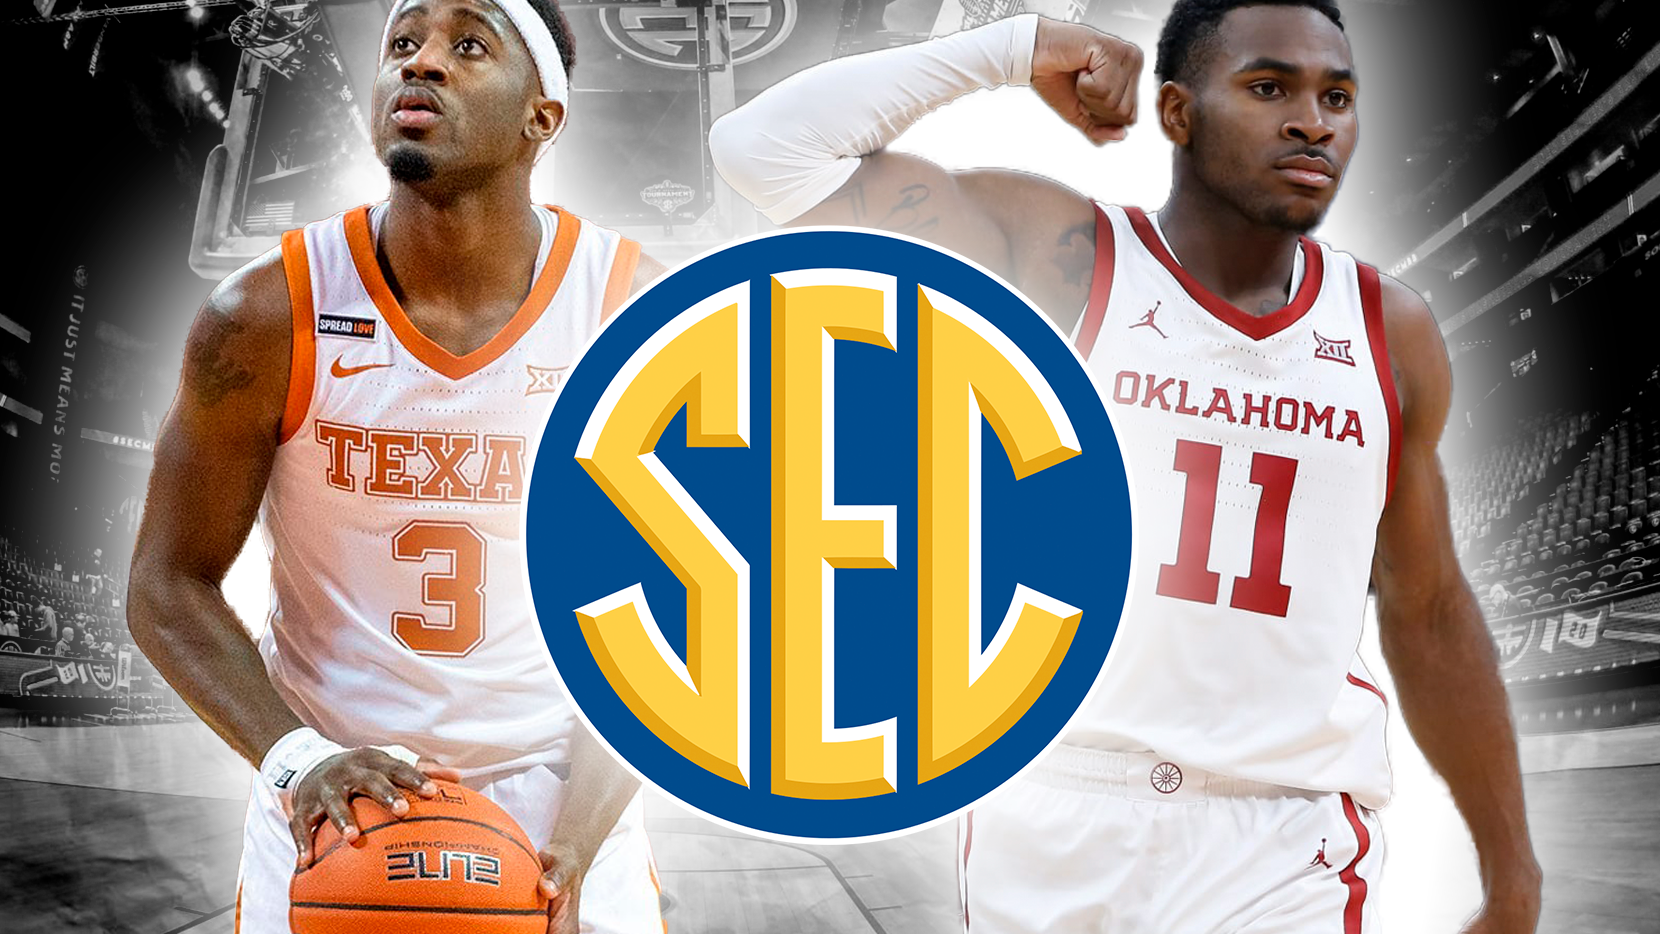 How The Recent Conference Realignment Affects College Basketball